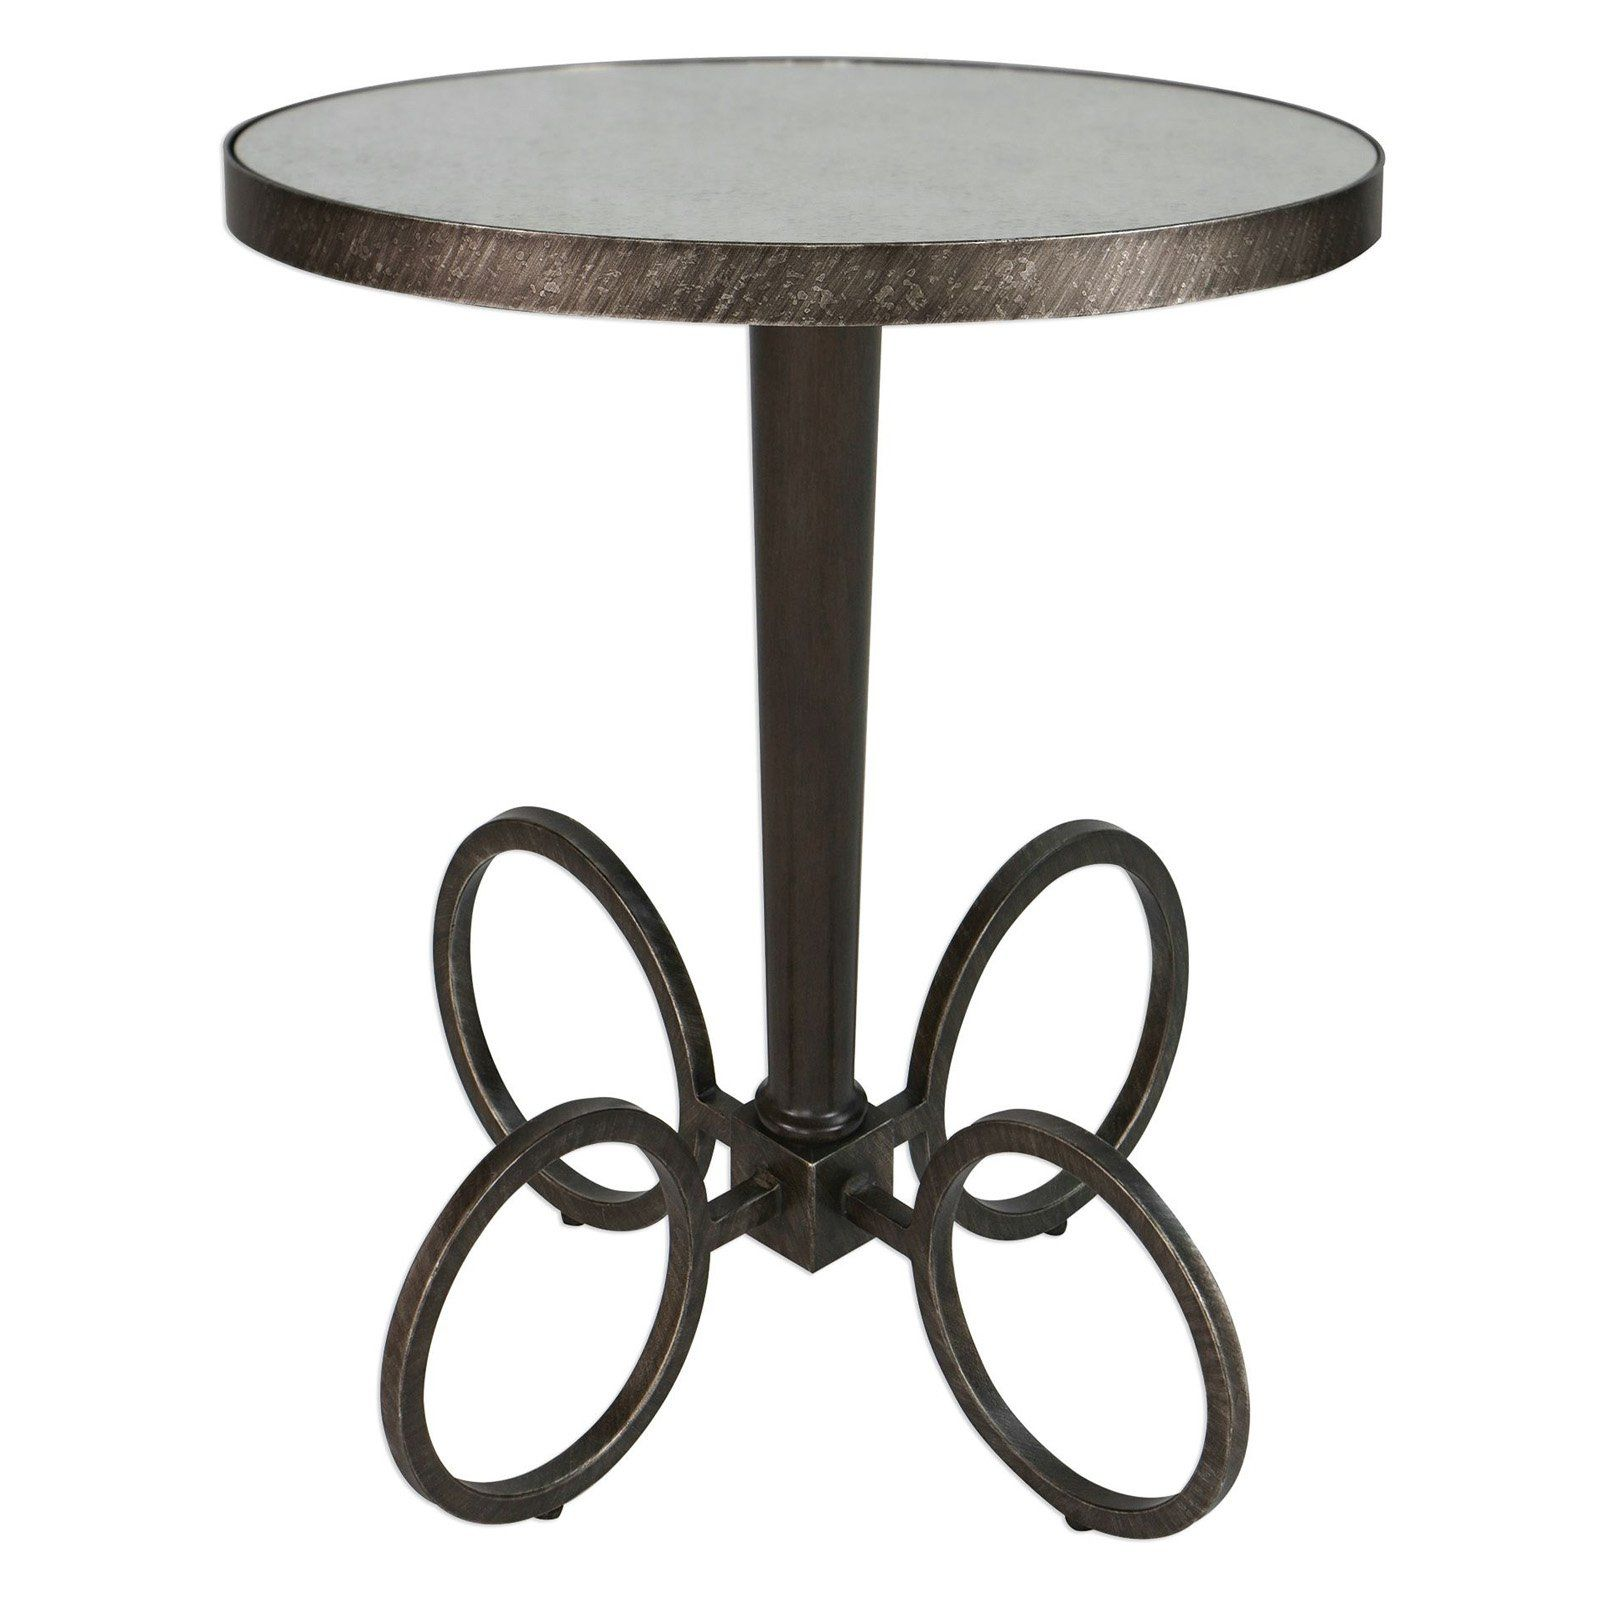 uttermost jalen industrial accent table interior design round from mirror wicker chair french chairs orient lighting entry console beverage cooler side the brick coffee tables